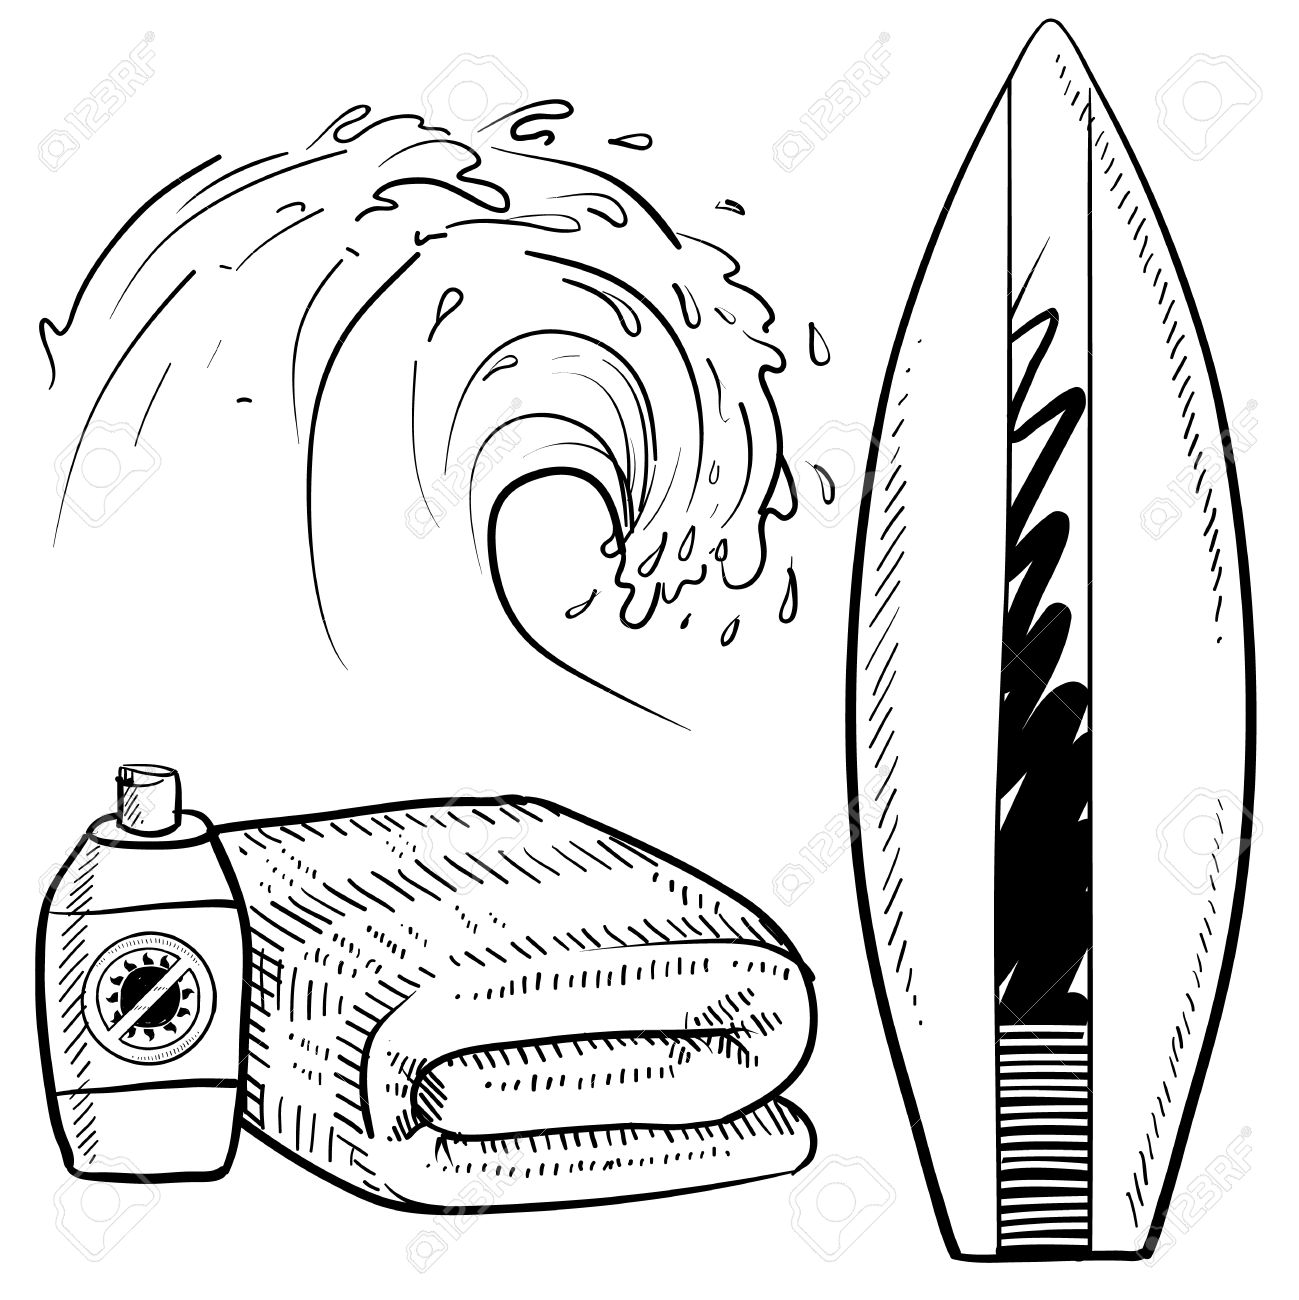 1299x1300 Doodle Style Surfing Gear Sketch In Vector Format Set Includes